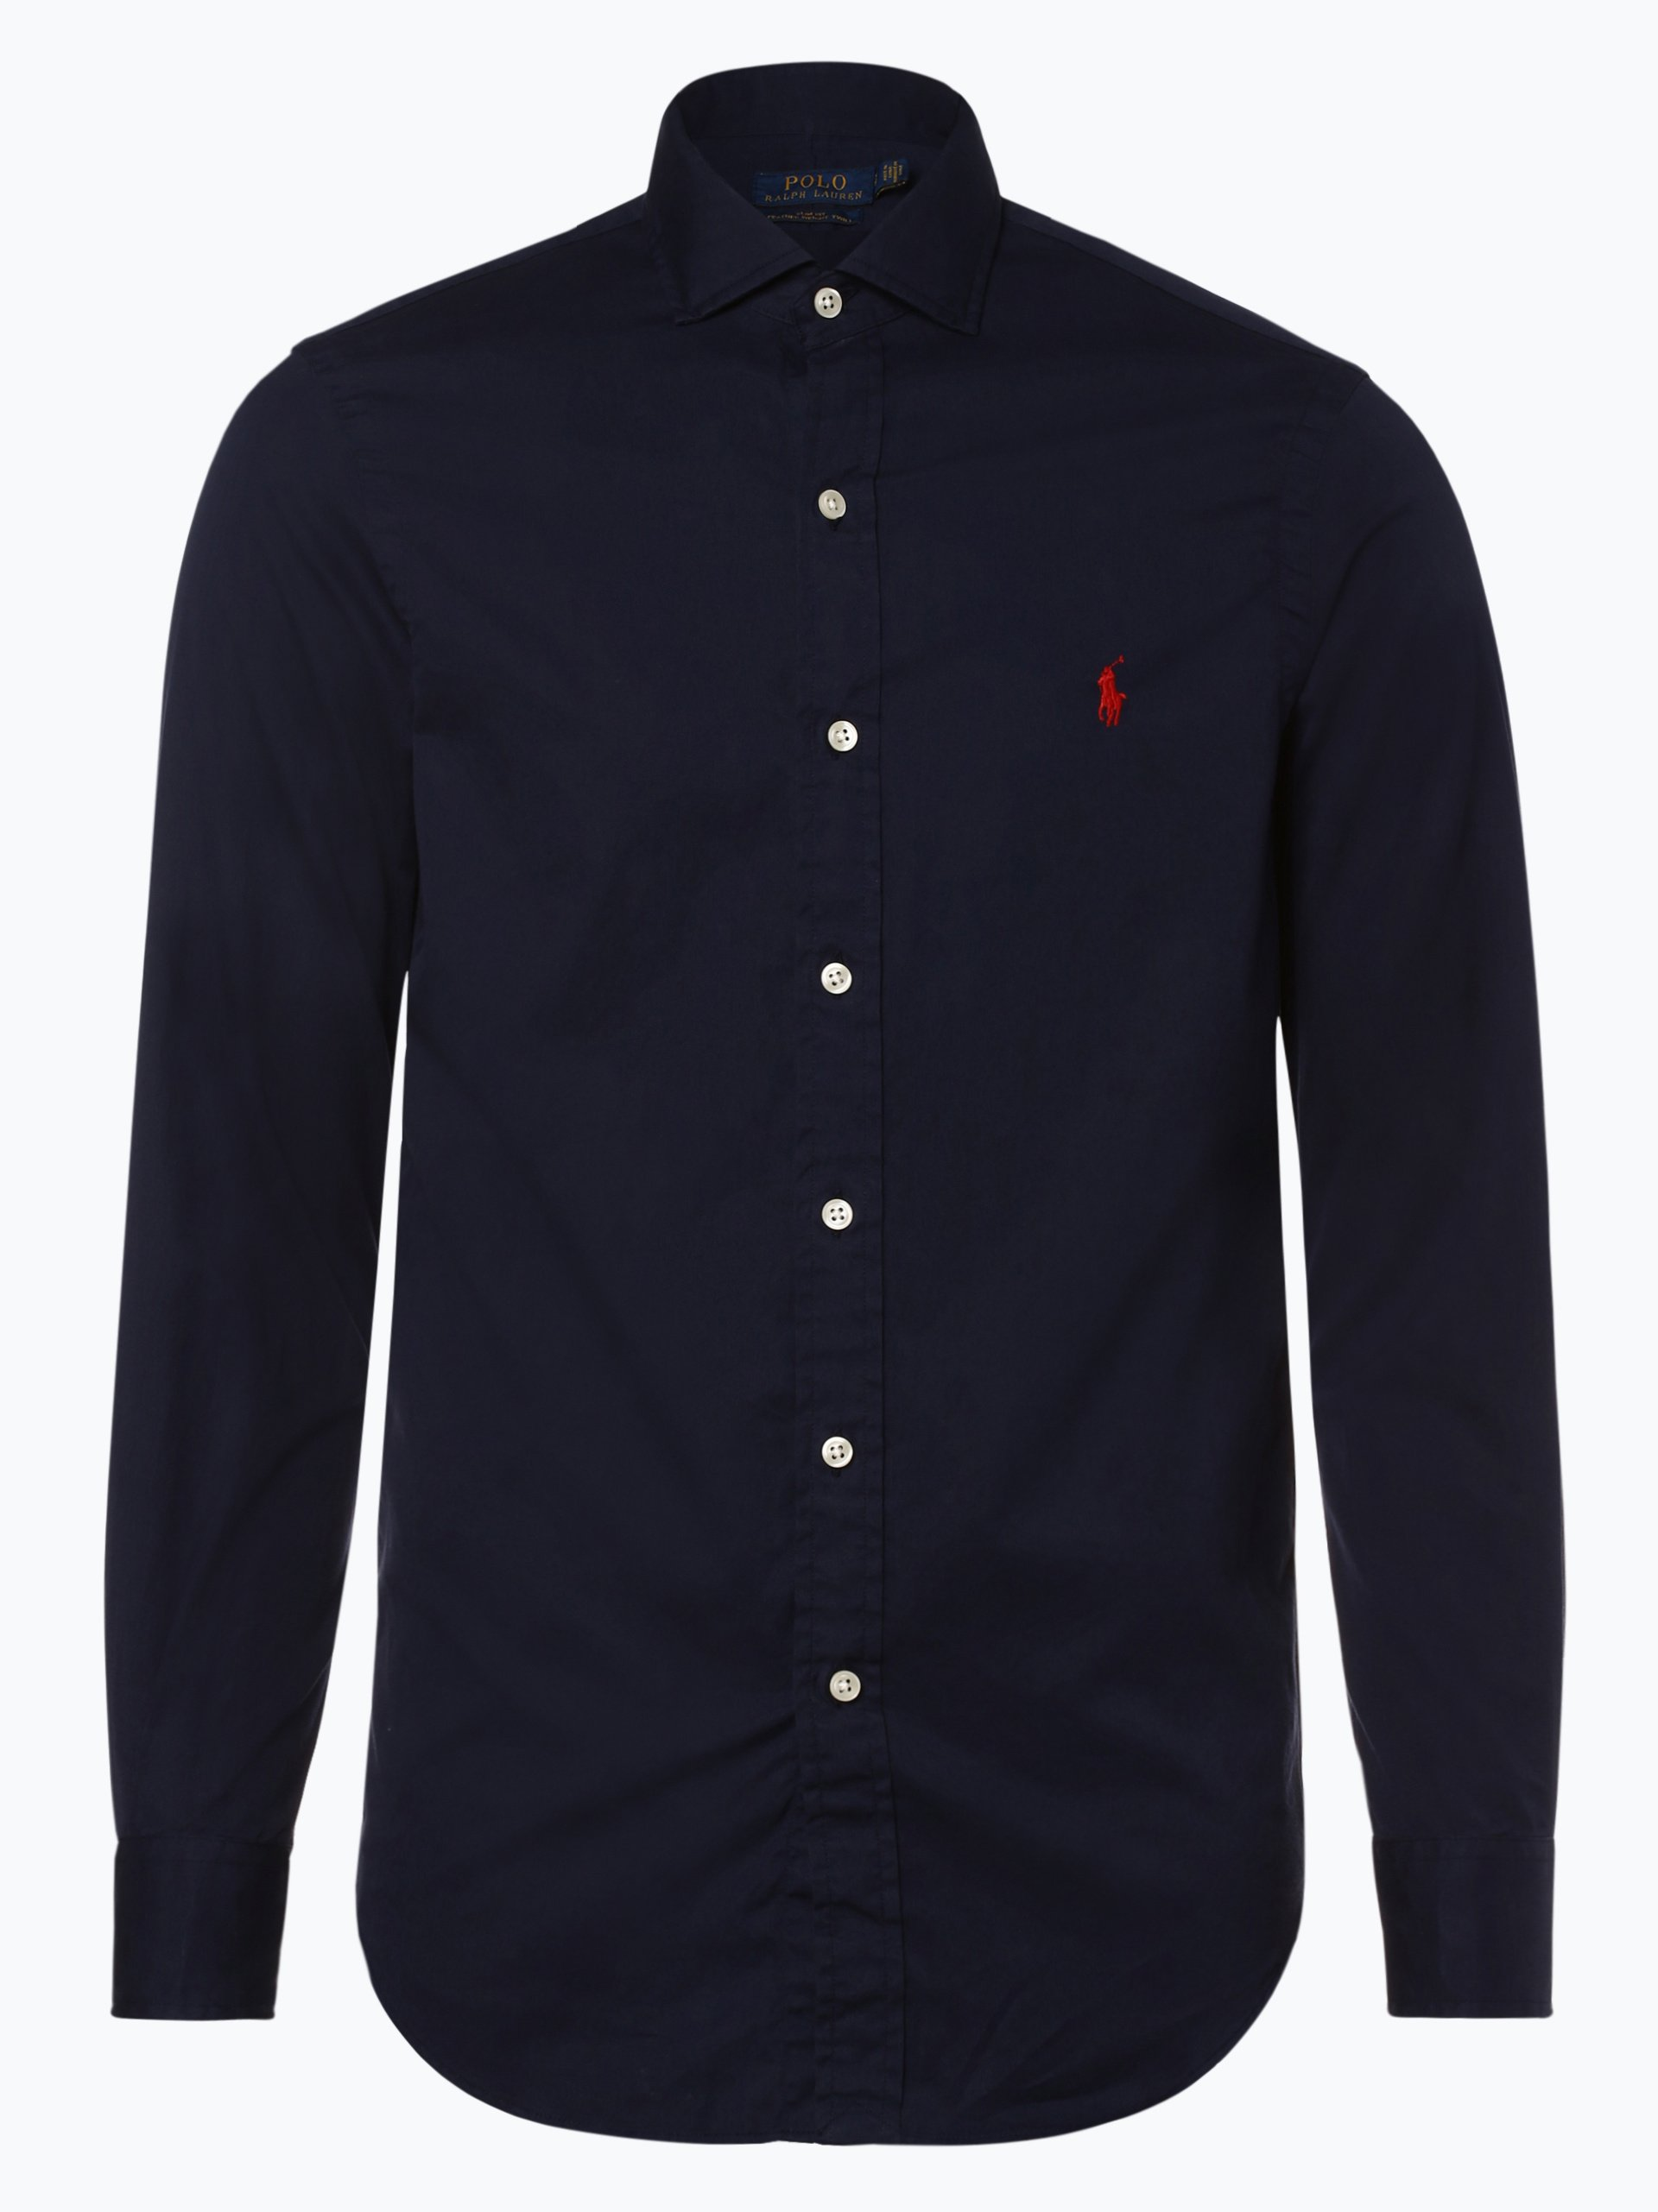 Polo Ralph Lauren Herren Hemd - Slim Fit